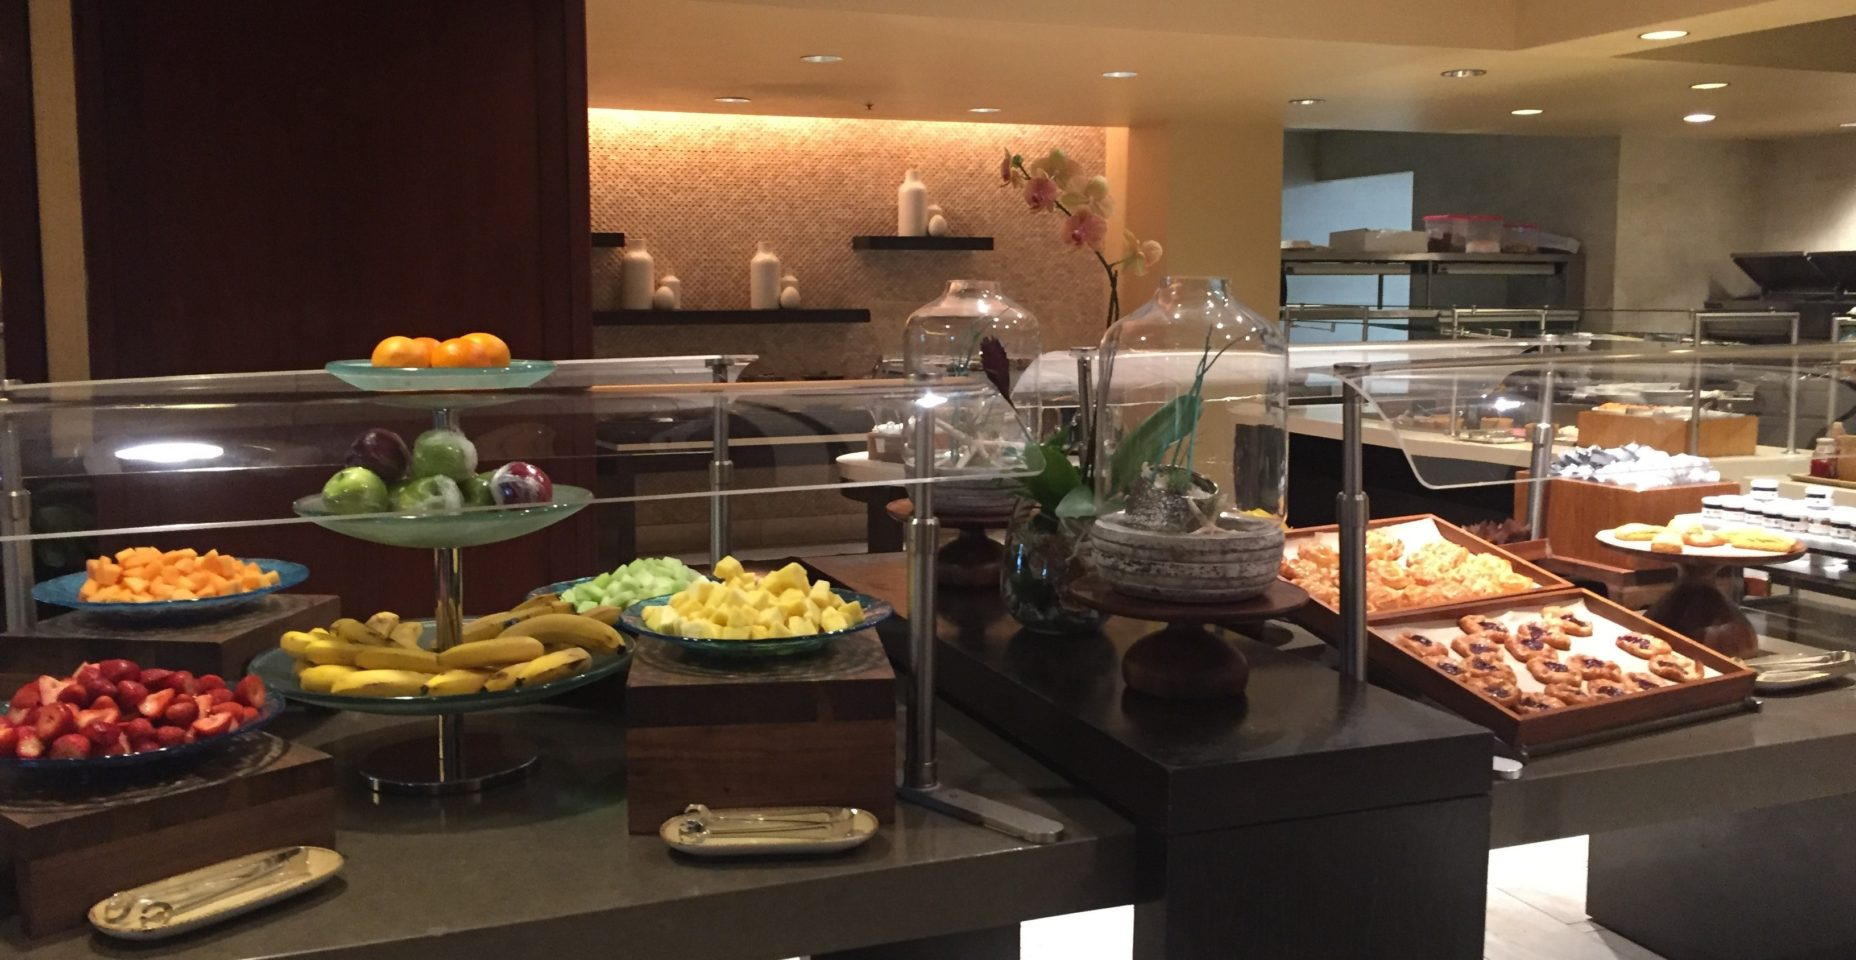 A Full Breakfast Buffet or a la carte Table Service at the Tanglewood Restaurant of the Hyatt Regency Coconut Point ~ Gem of a Florida Resort